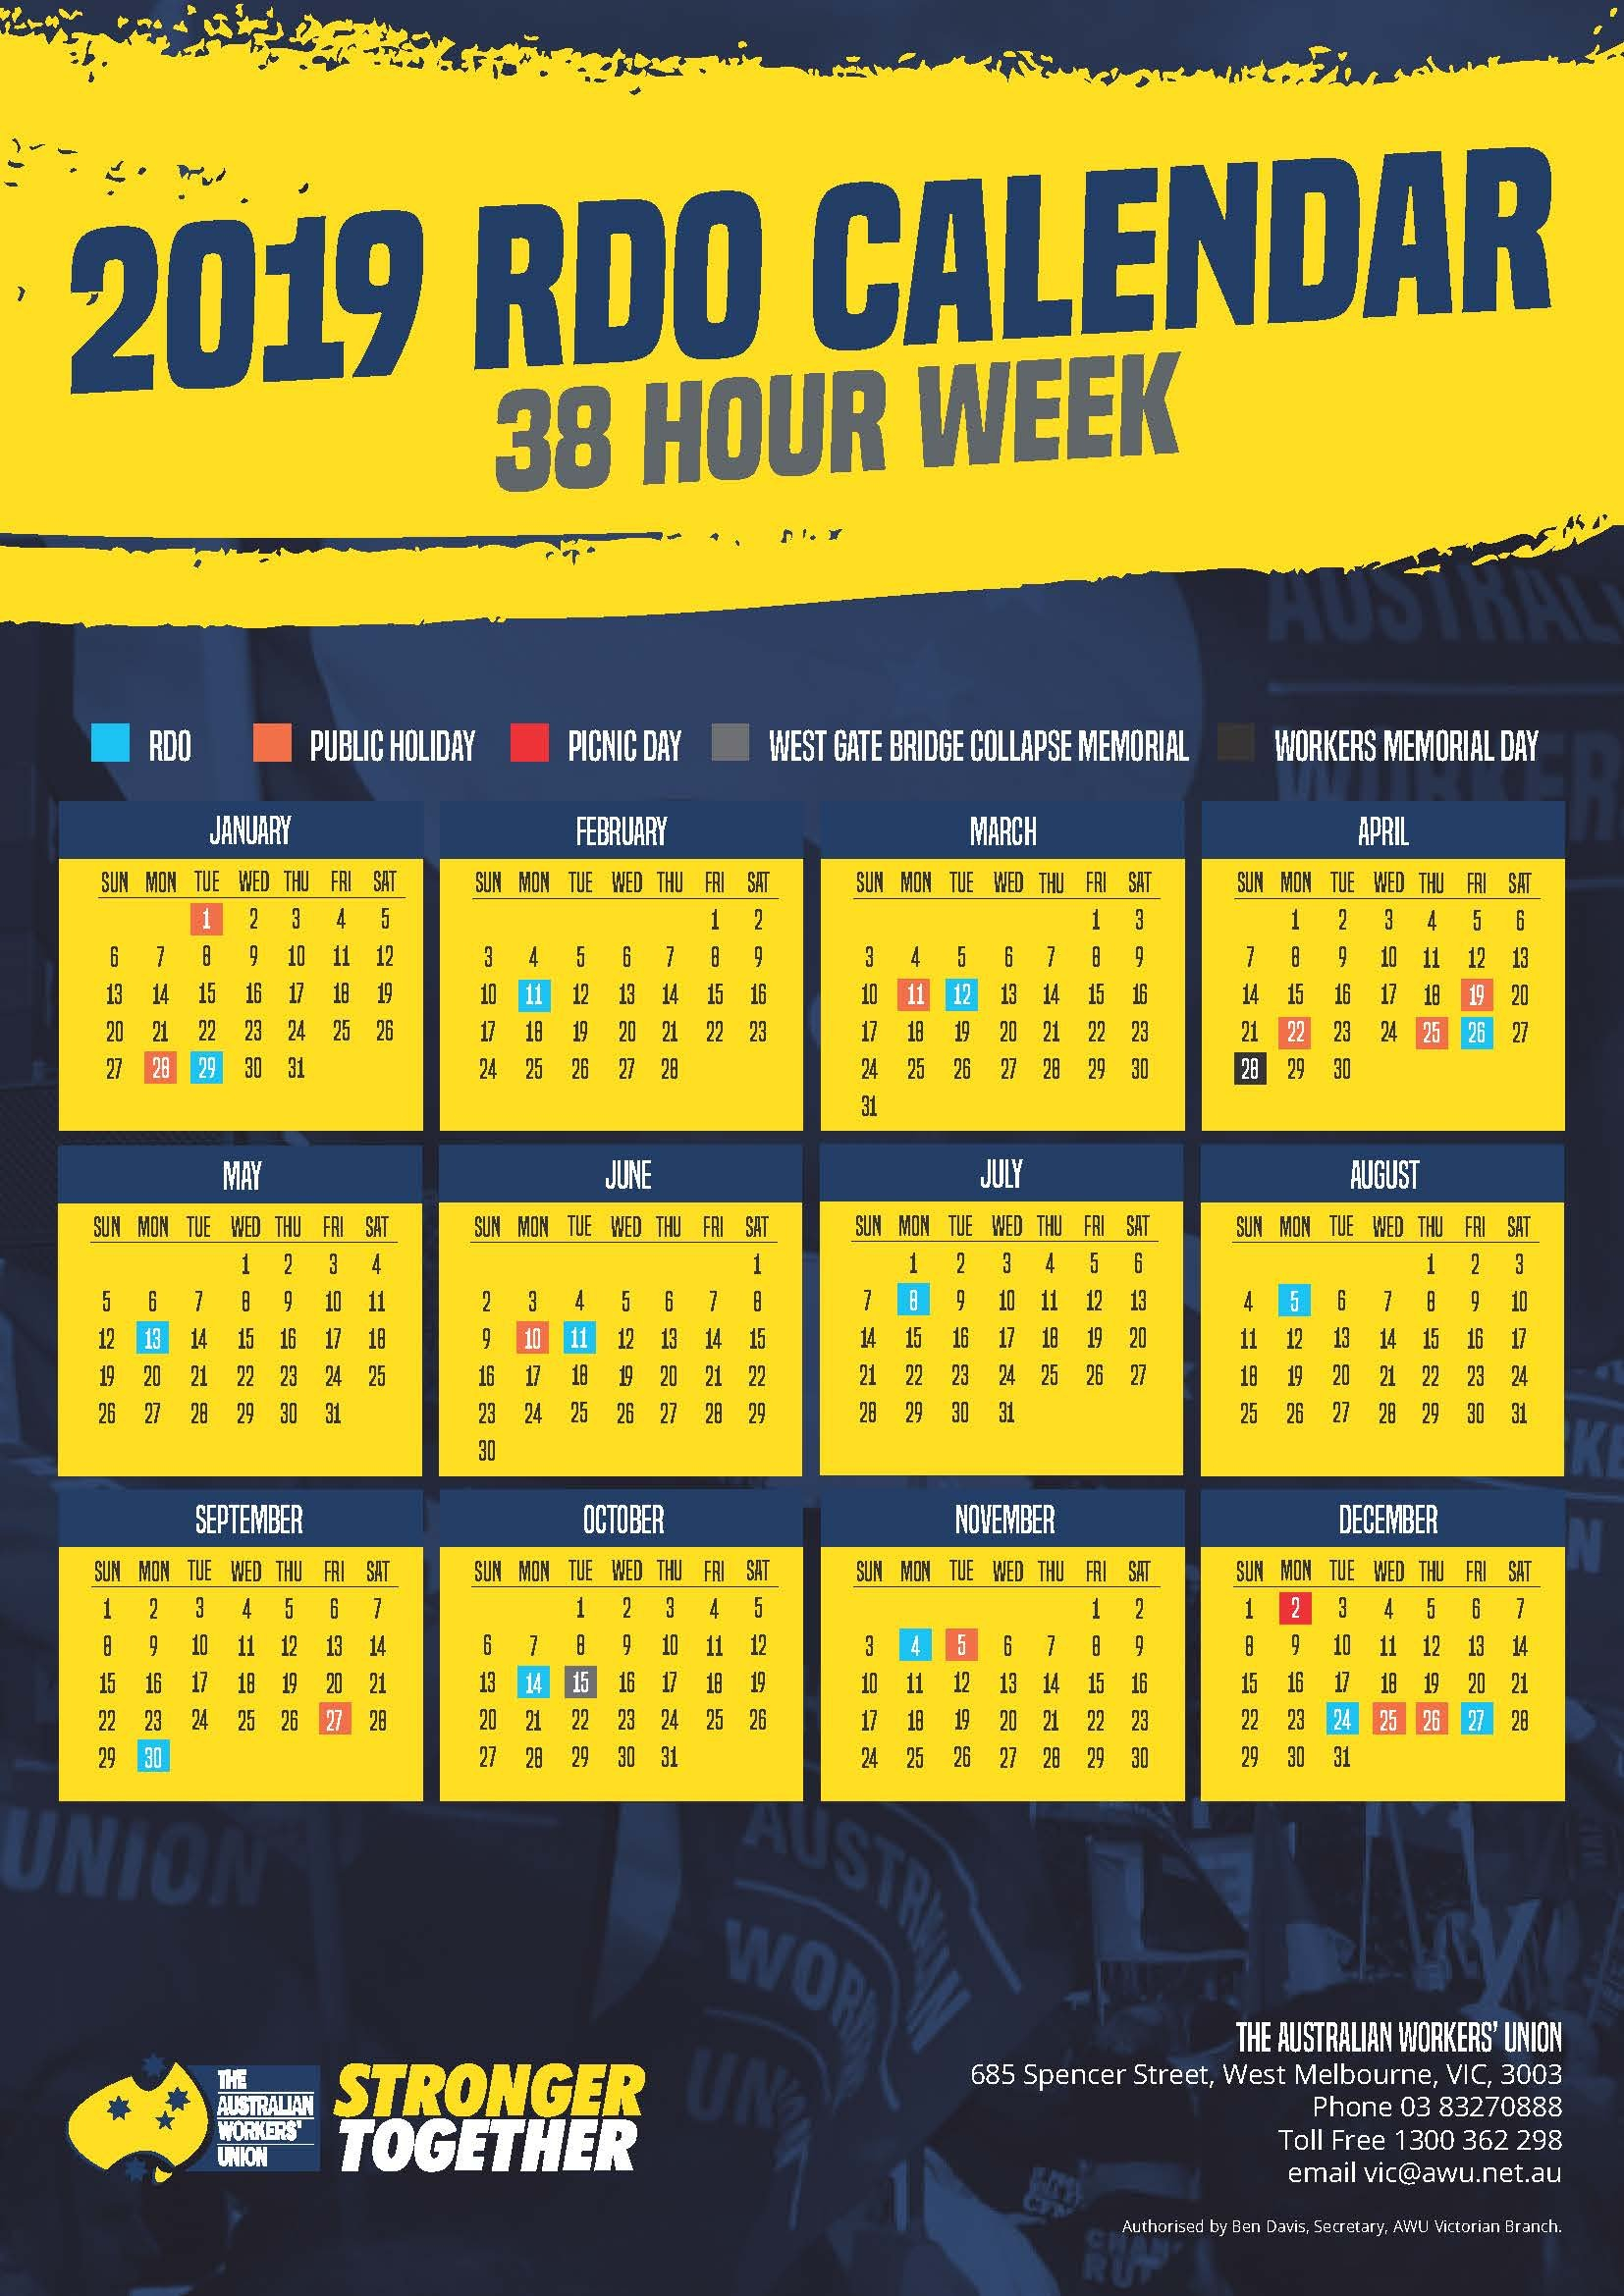 2019 36 And 38 Hour Week Rdo Calendars | Awu Victoria Calendar 2019 Victoria